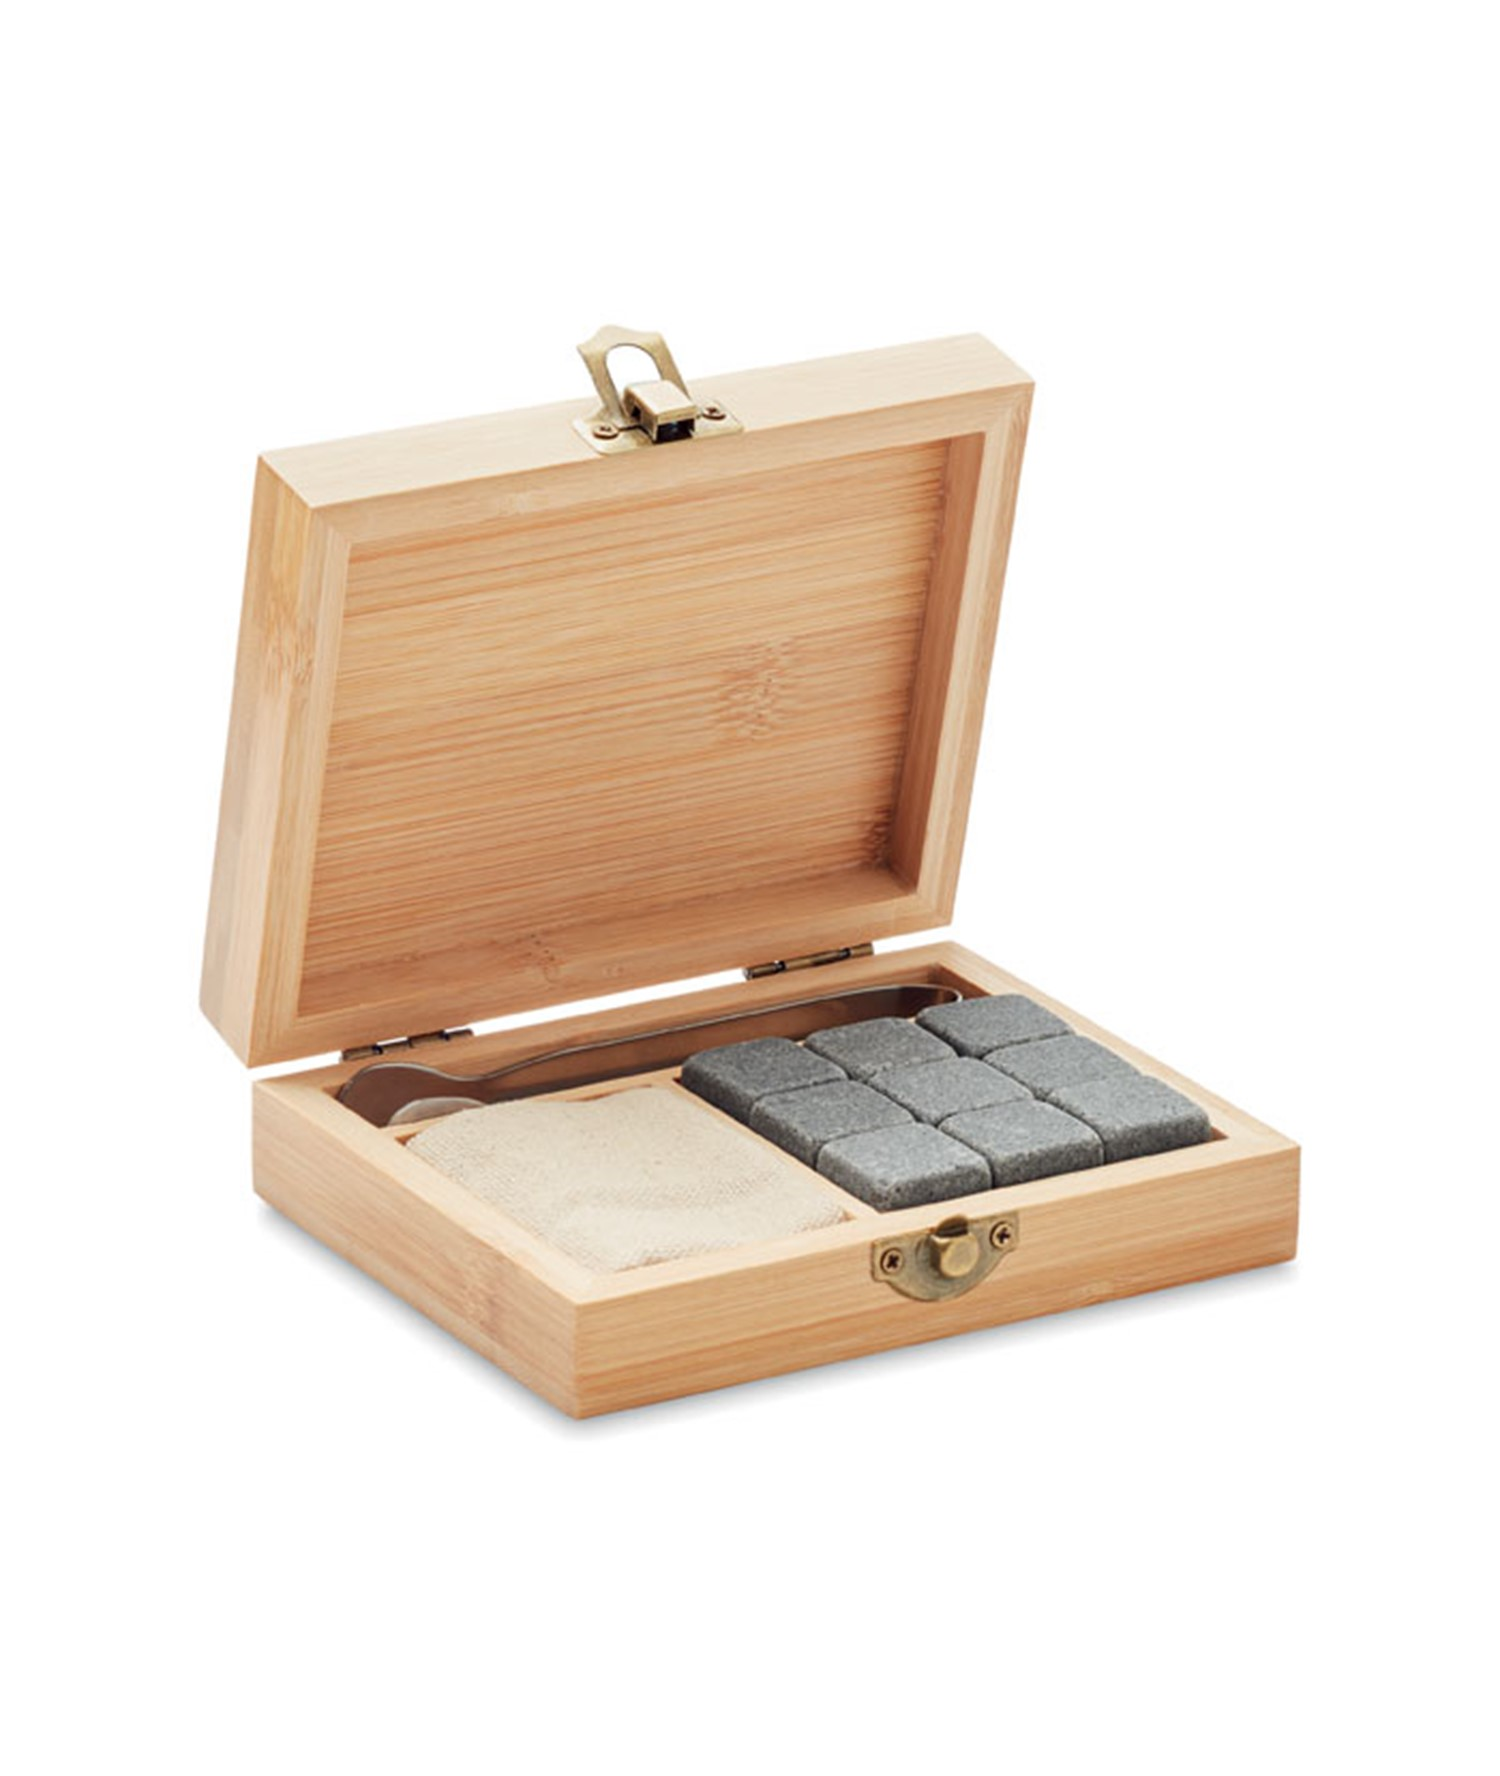 DUNDALK - WHISKY SET IN BAMBOO BOX